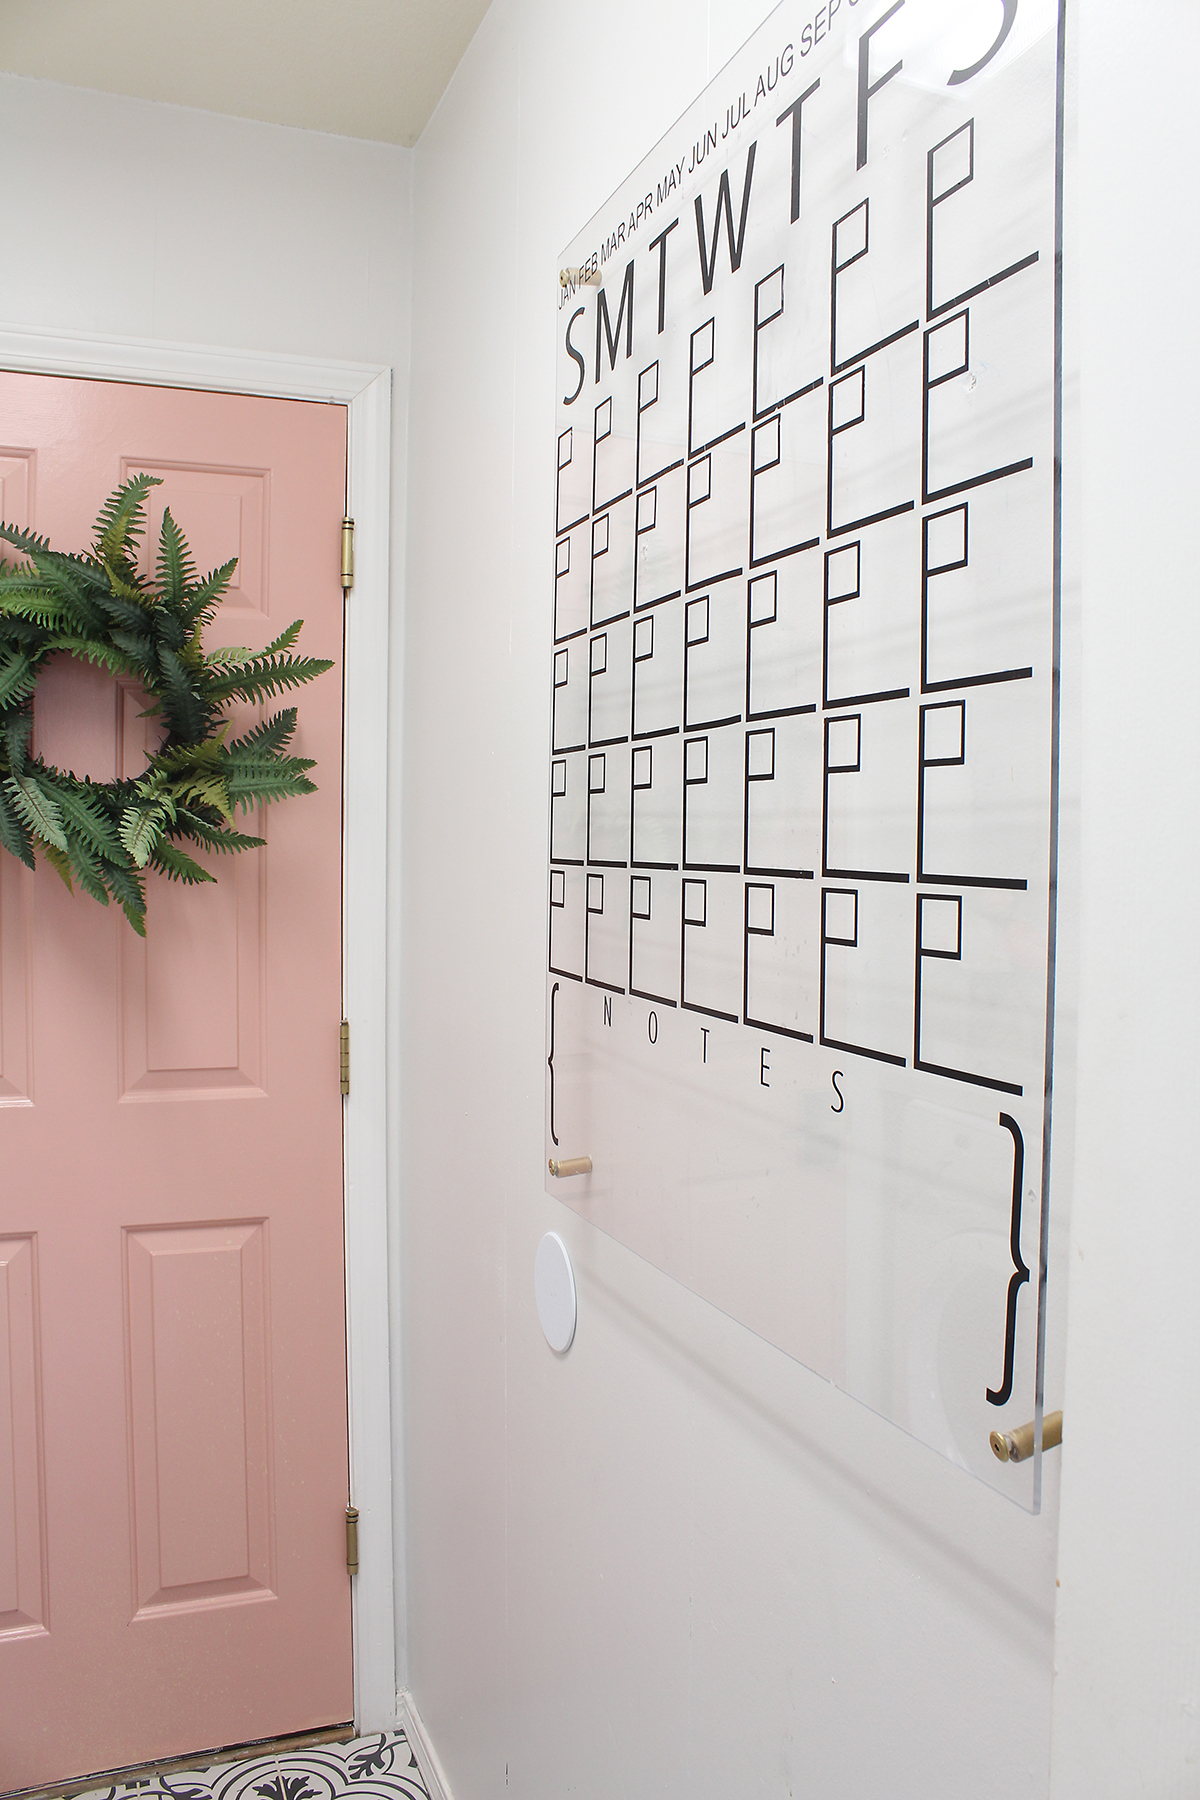 New You can get the tutorial here or purchase the calendar decal here